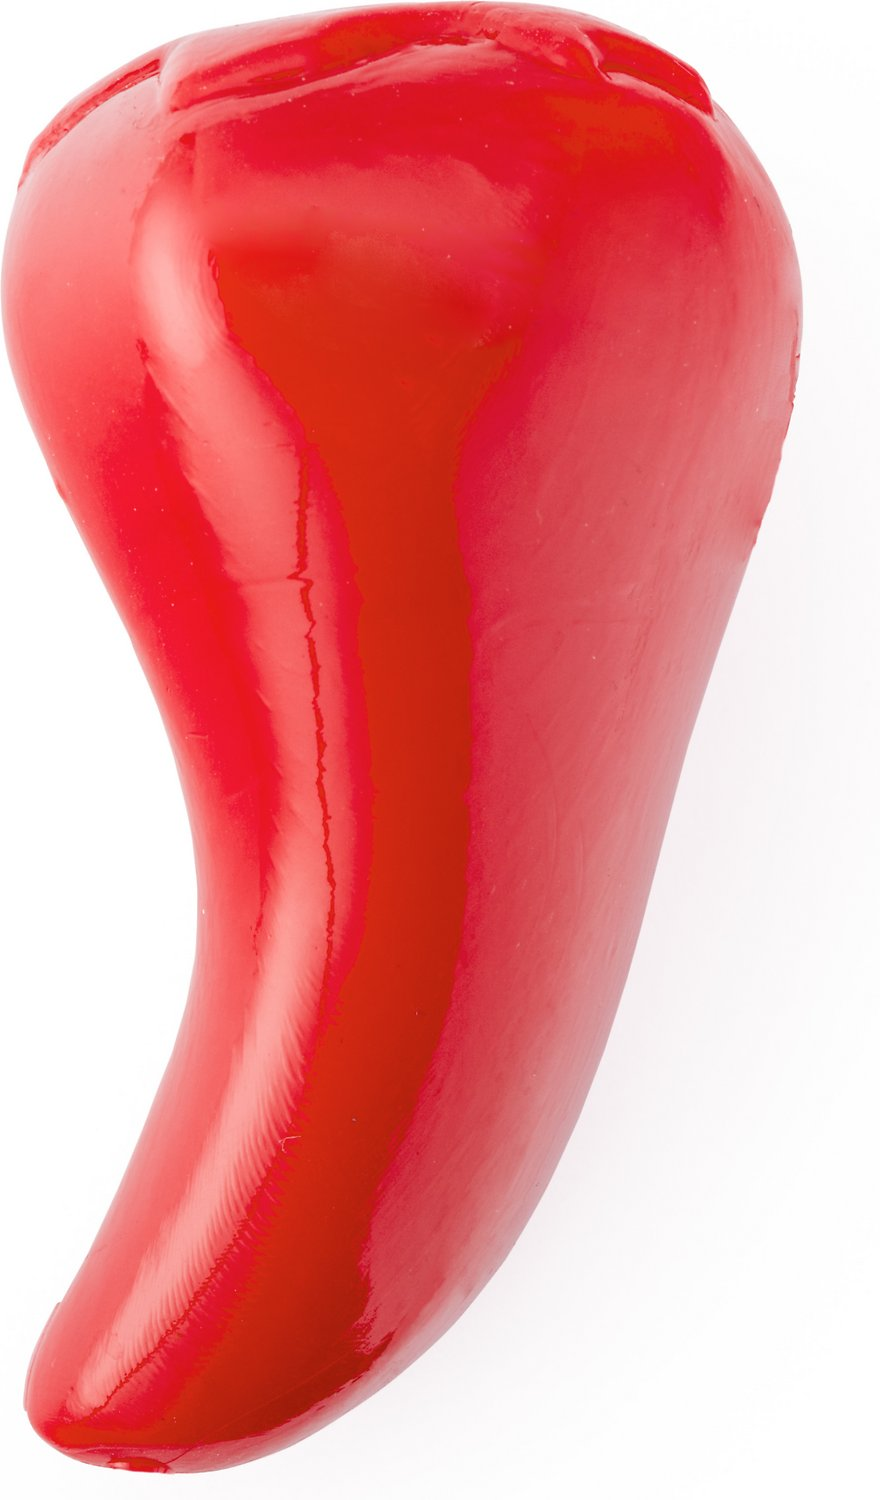 Planet Dog Orbee-Tuff Chili Pepper Dog Toy, Small